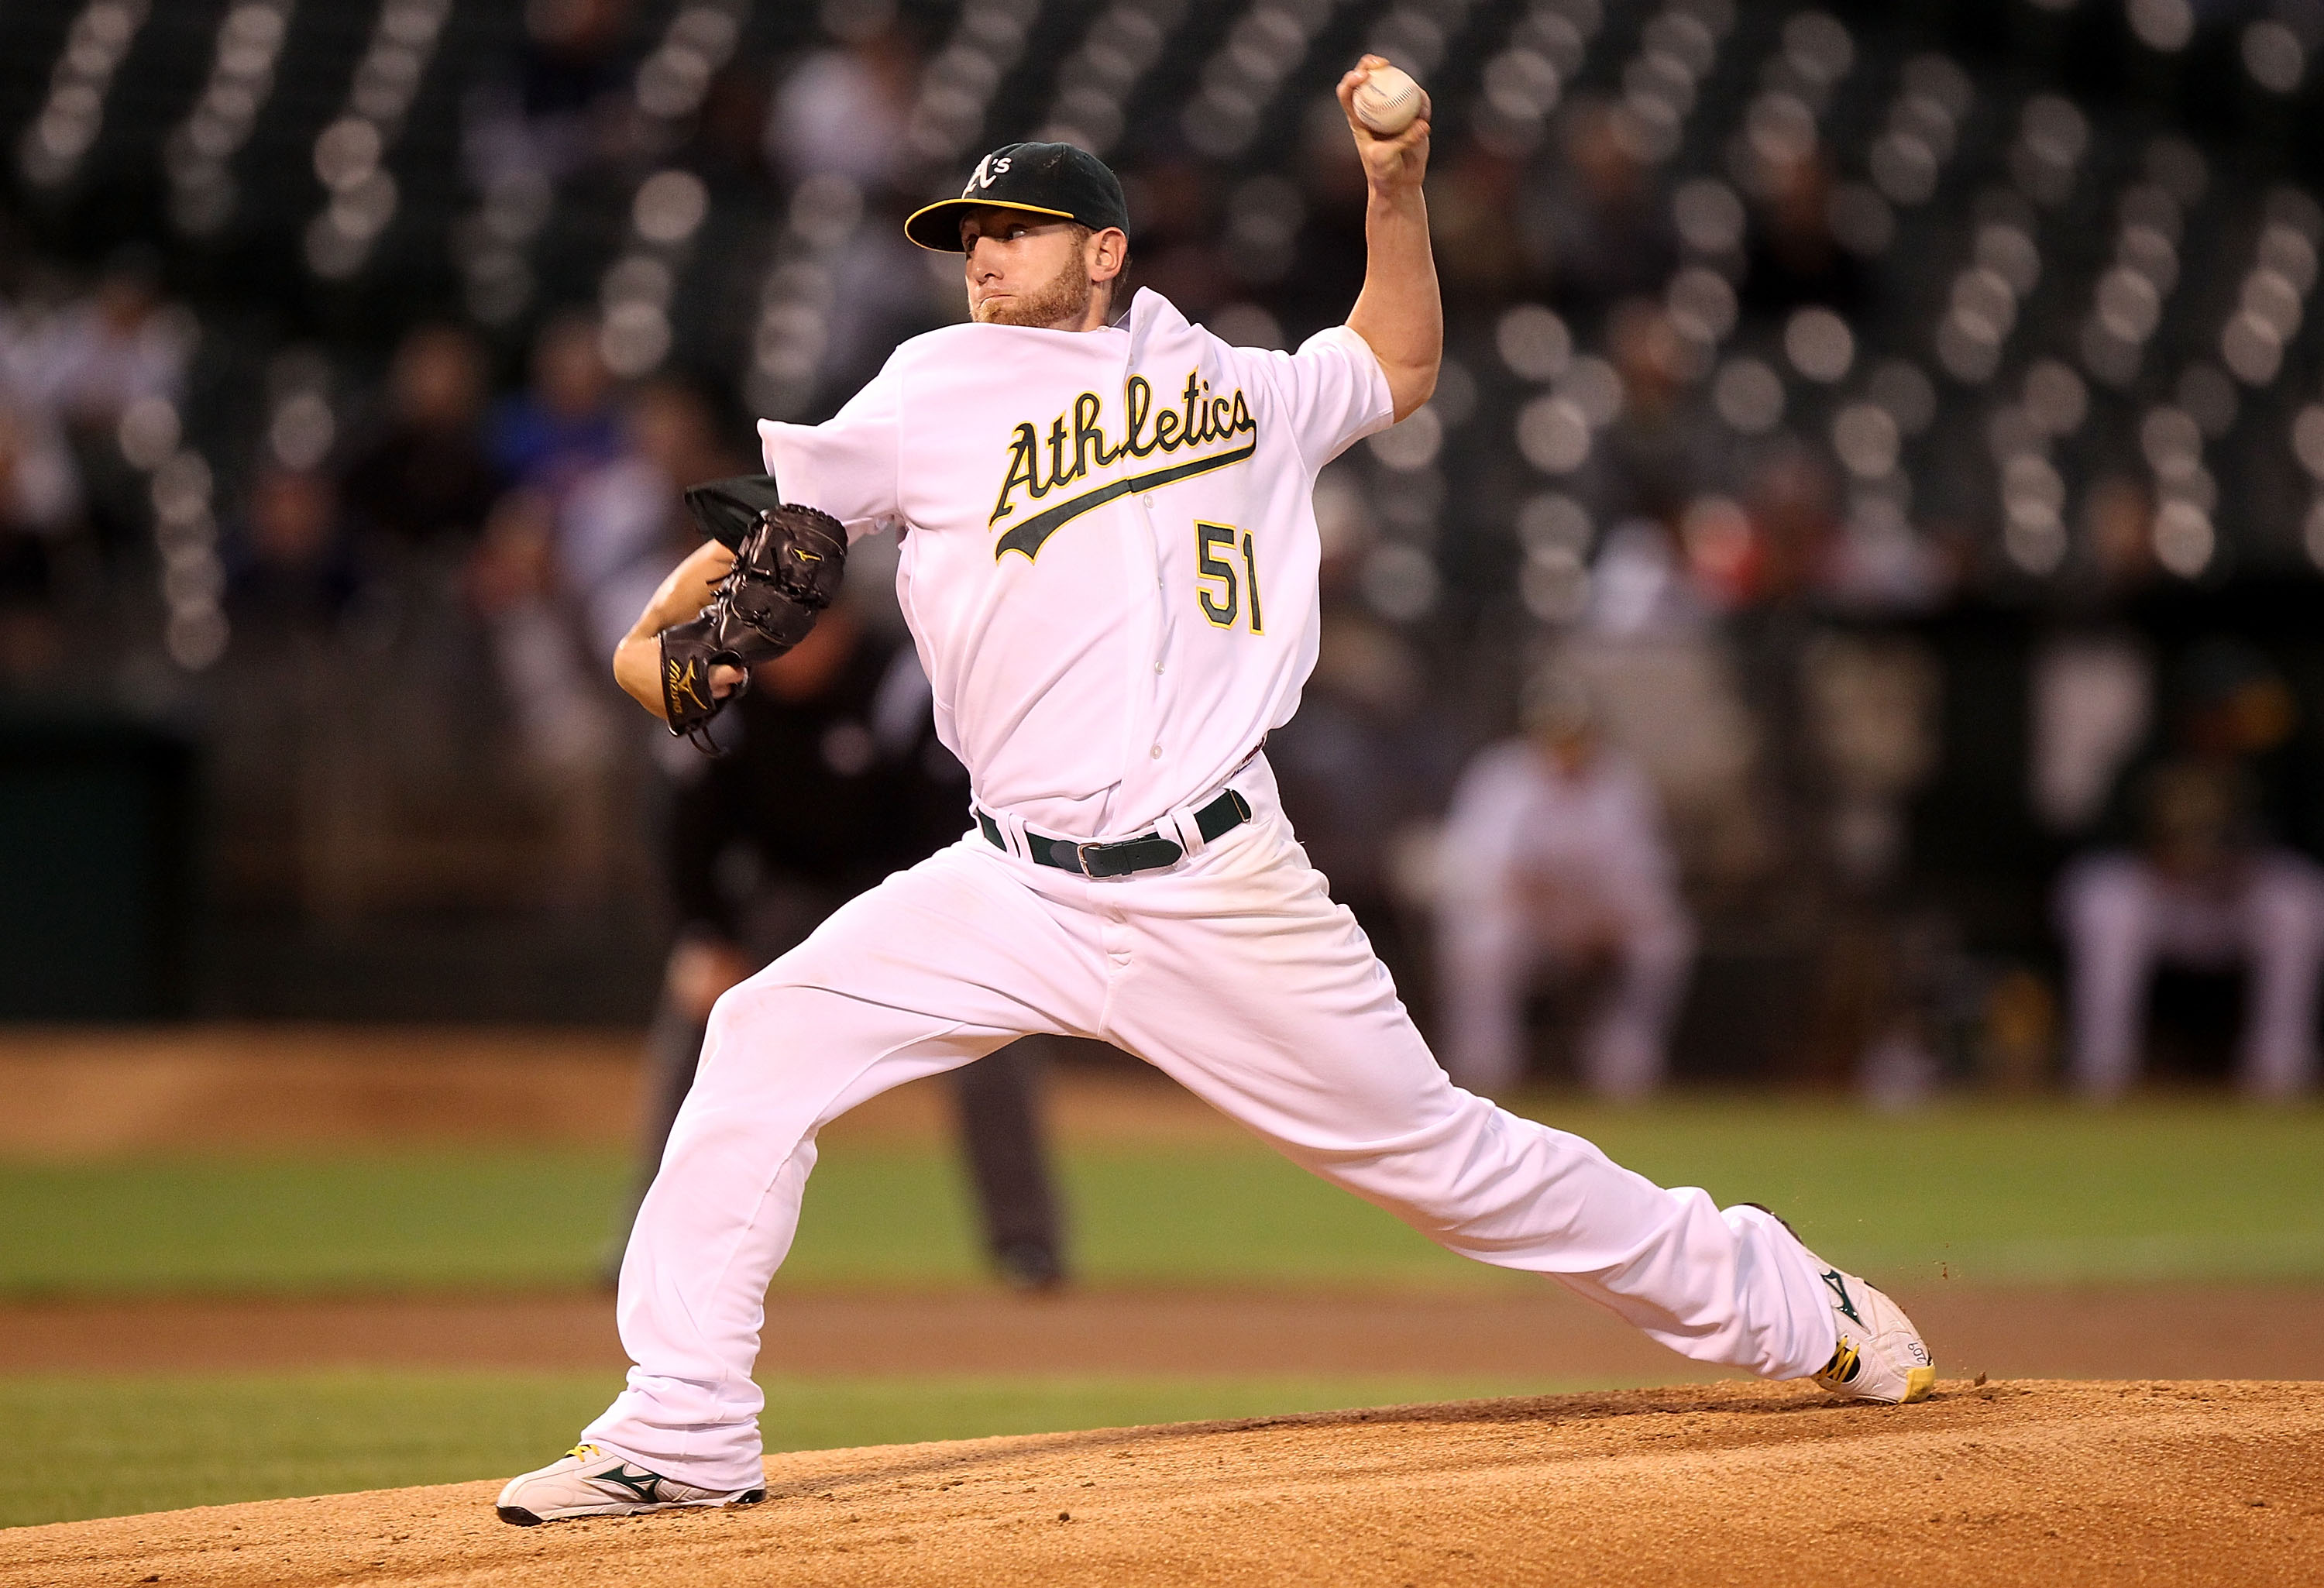 OAKLAND, CA - SEPTEMBER 23:  Dallas Braden #51 of the Oakland Athletics pitches against the Texas Rangers during a Major League Baseball game at the Oakland-Alameda County Coliseum on September 23, 2010 in Oakland, California. (Photo by Jed Jacobsohn/Gett